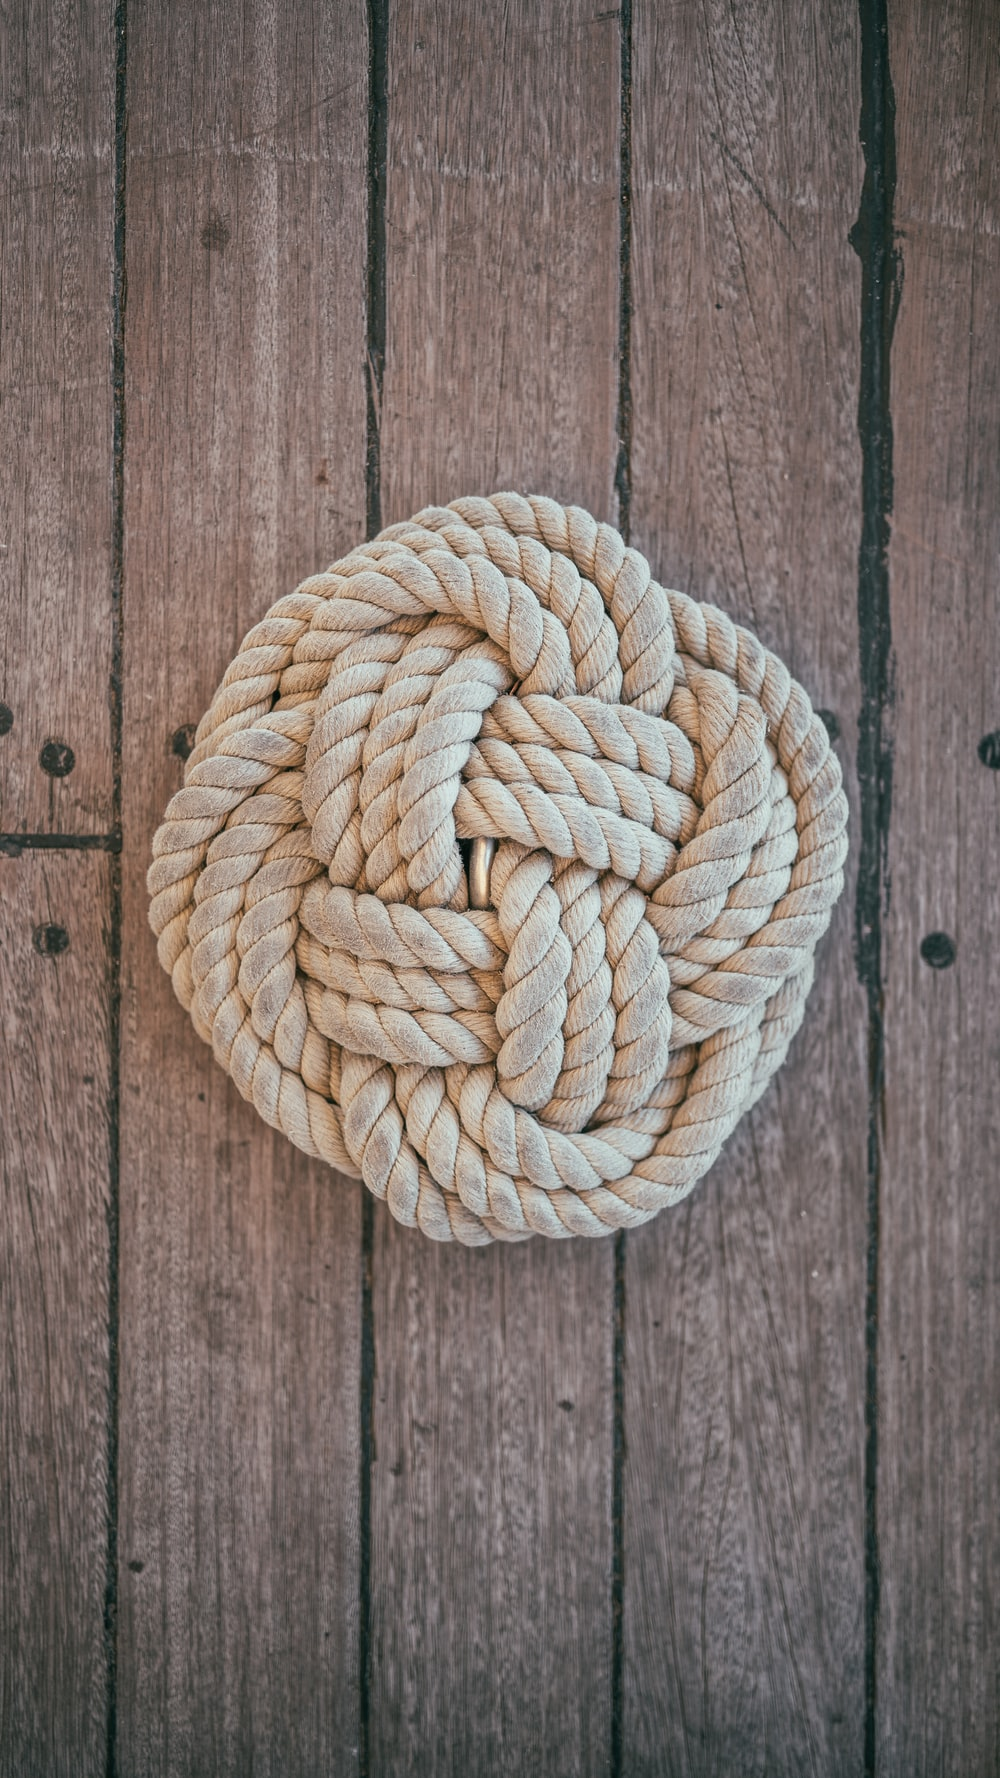 beige rope on brown surface